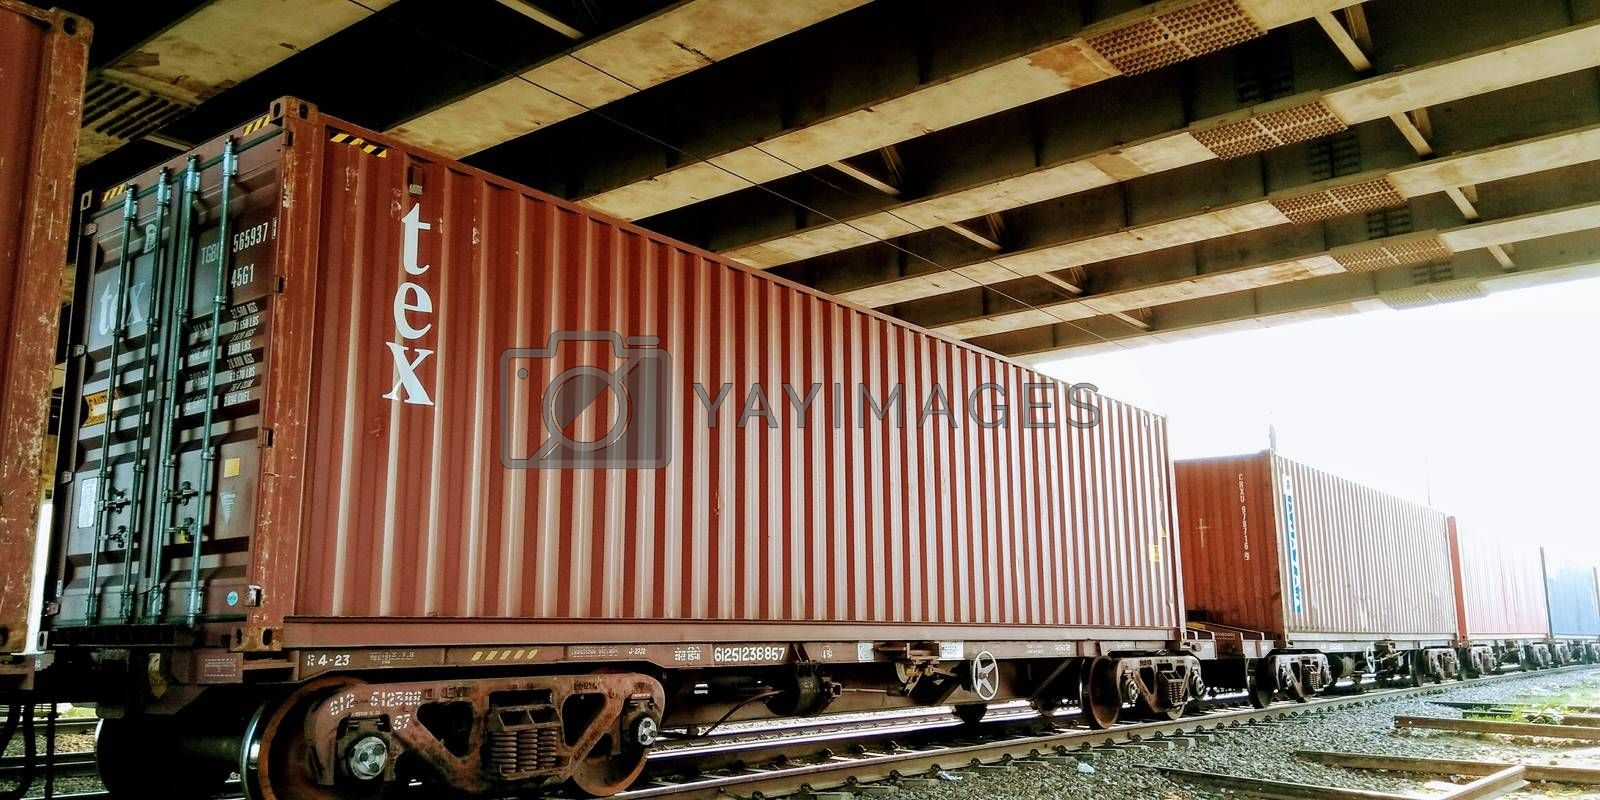 A picture of Containers